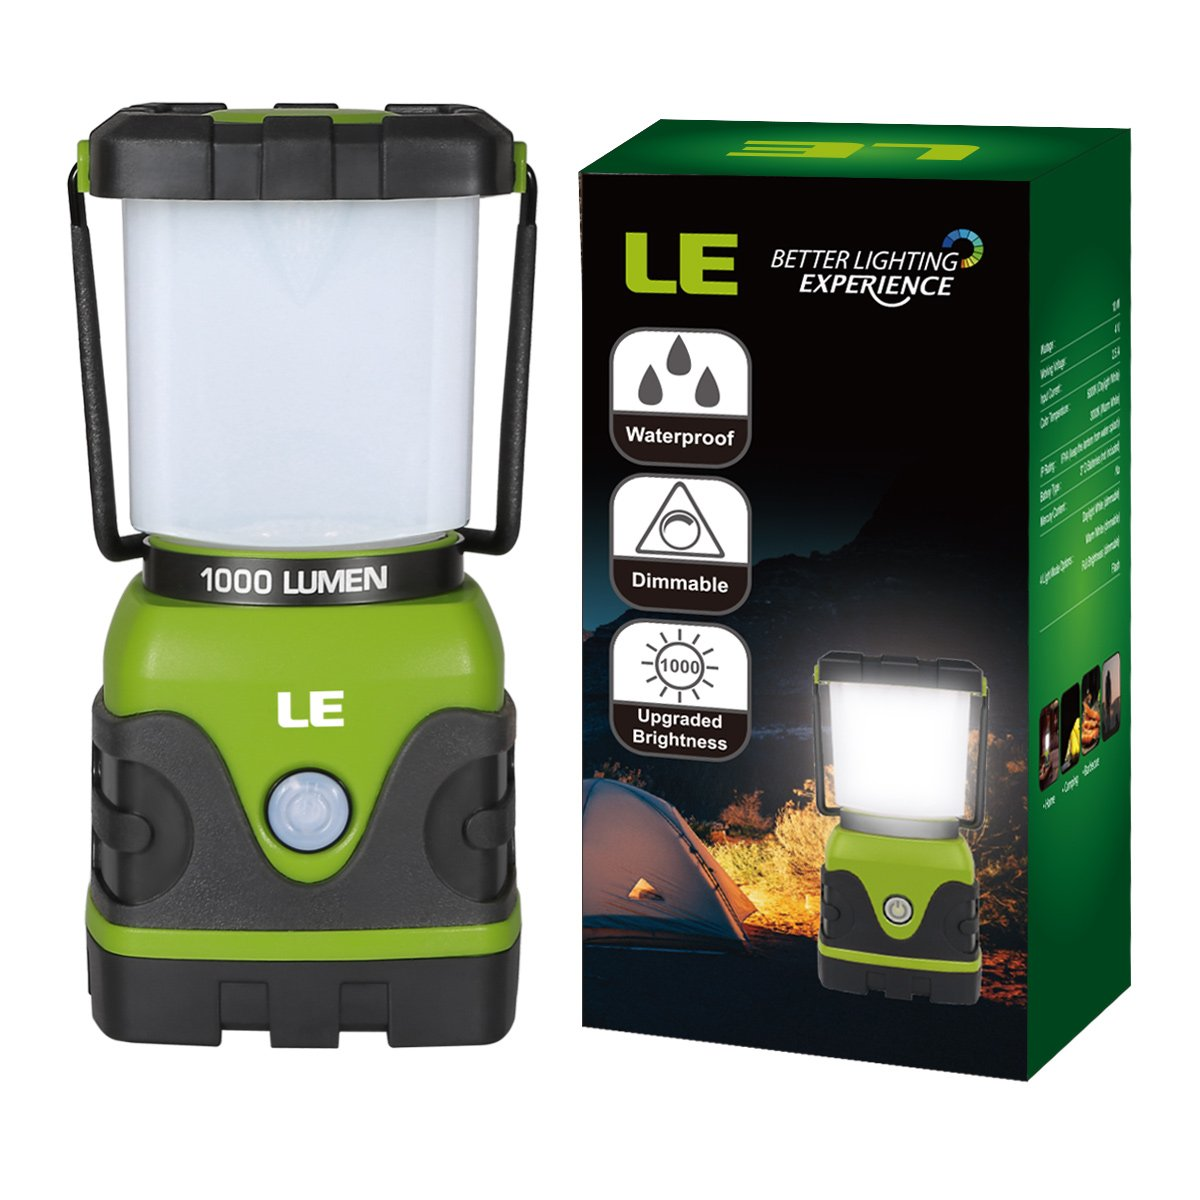 Amazon.com  LE 1000lm Dimmable Portable LED C&ing Lantern 4 Modes Water Resistant Light Battery Powered L& for Home Garden Outdoor Hiking Fishing ...  sc 1 st  Amazon.com & Amazon.com : LE 1000lm Dimmable Portable LED Camping Lantern 4 ... azcodes.com